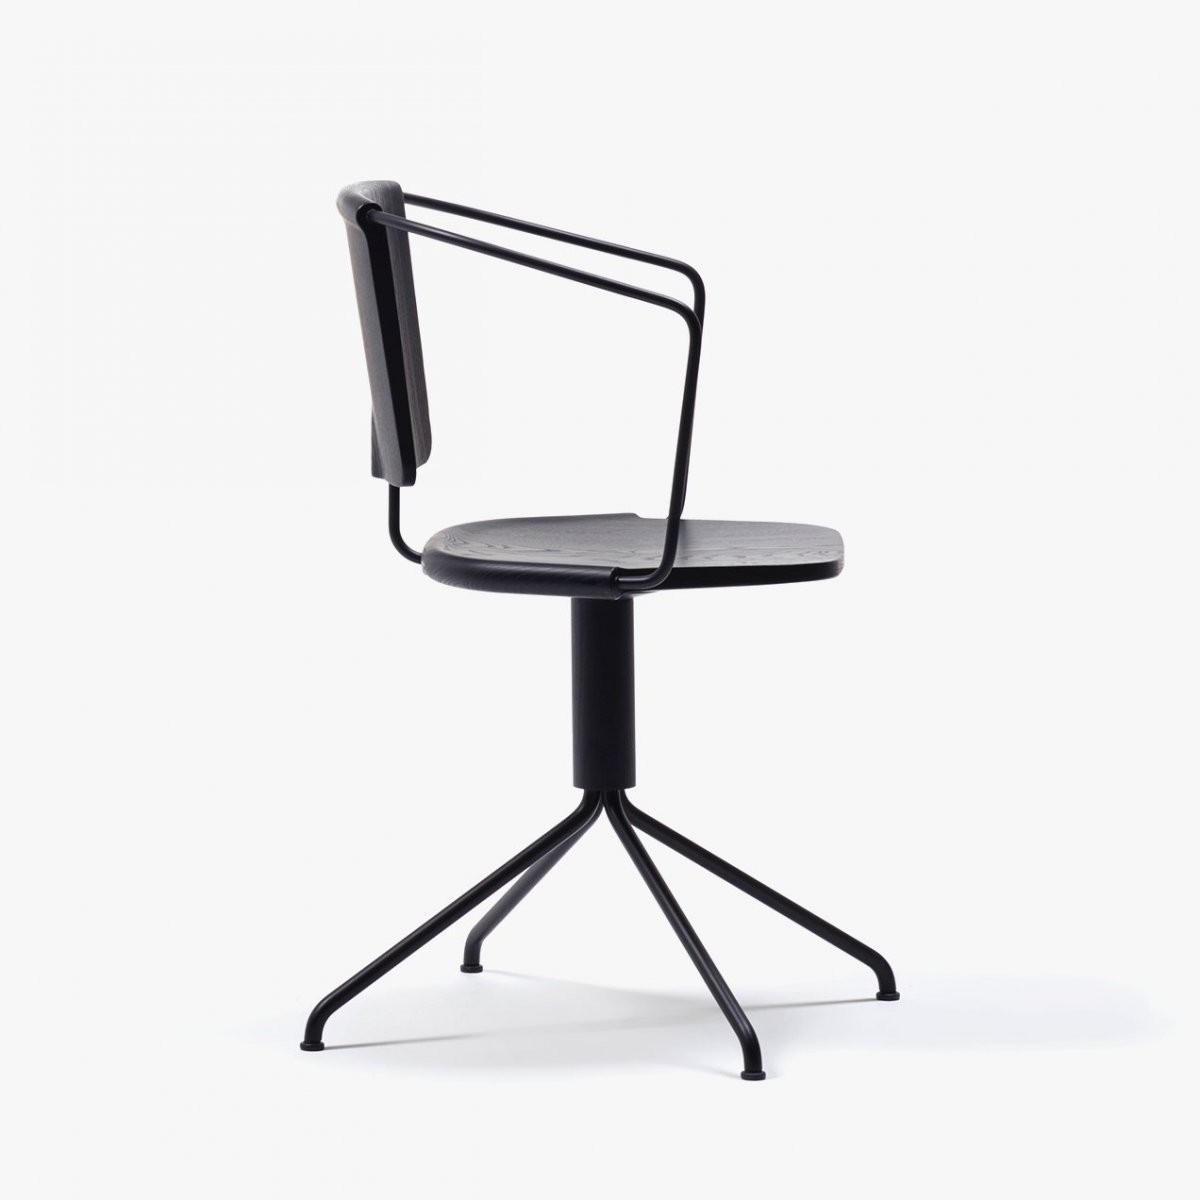 Uncino Version B swivel chair.